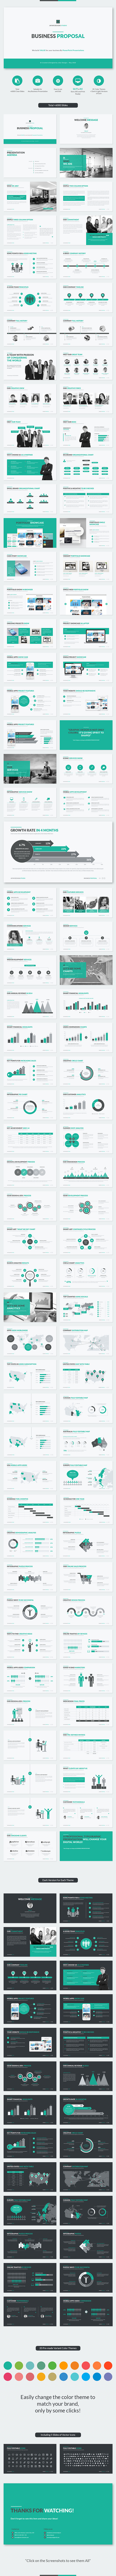 Business Proposal PowerPoint Template by JafarDesigns – Powerpoint Proposal Template